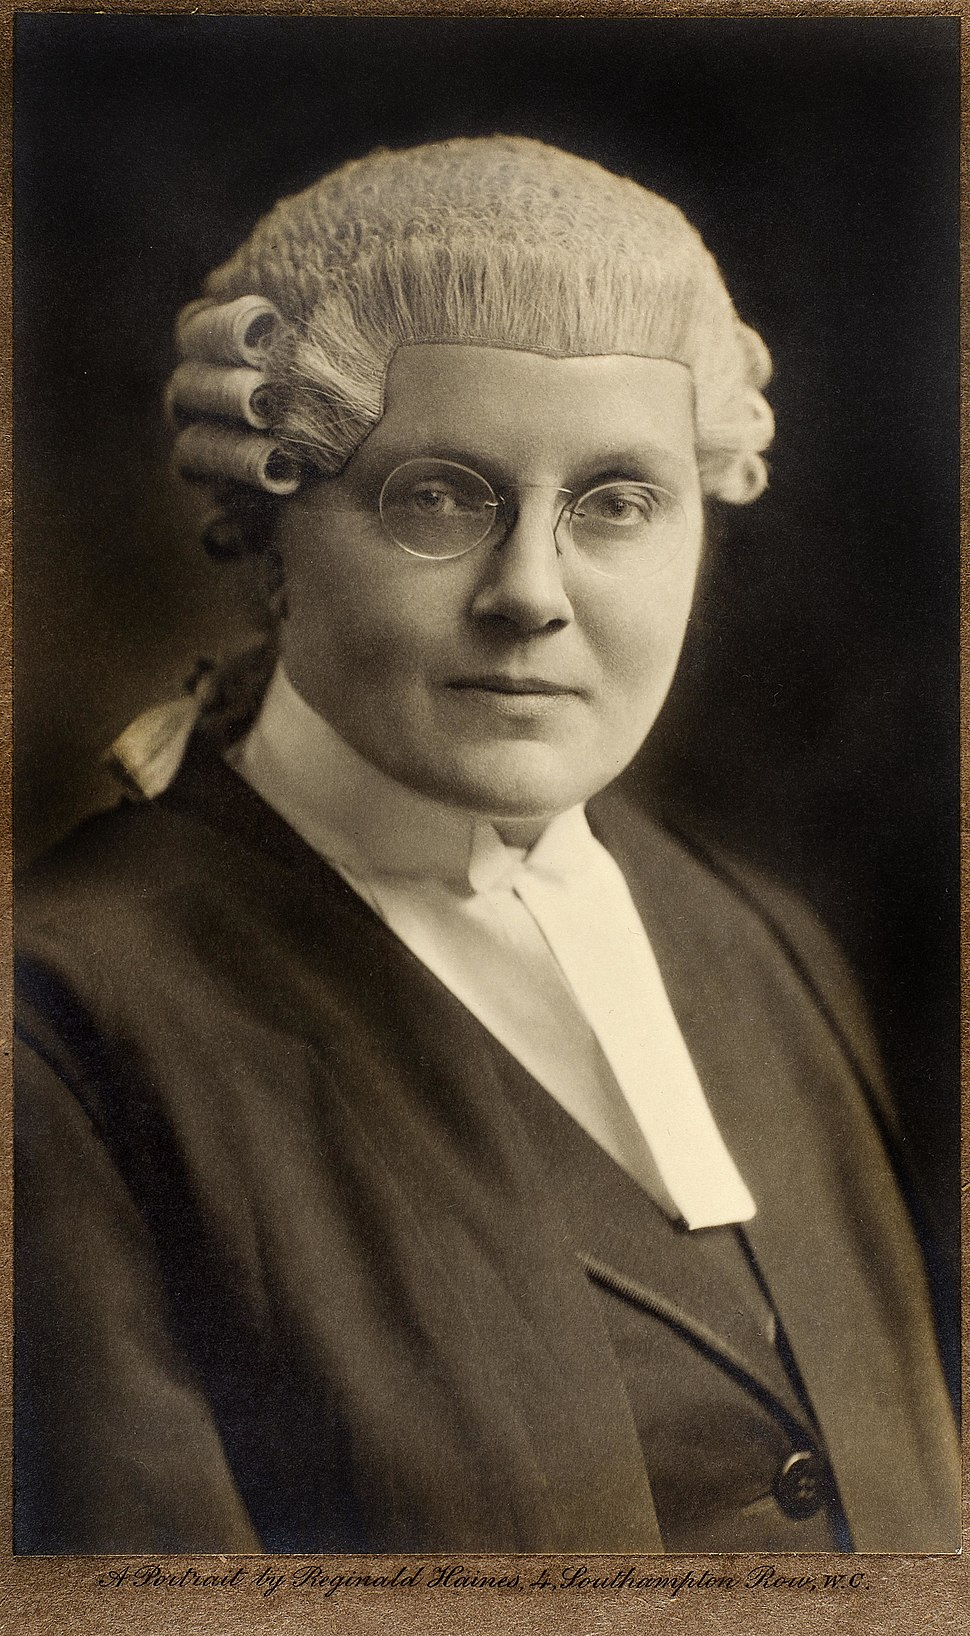 Photograph of Helena Normanton c. 1930 (22770439042)